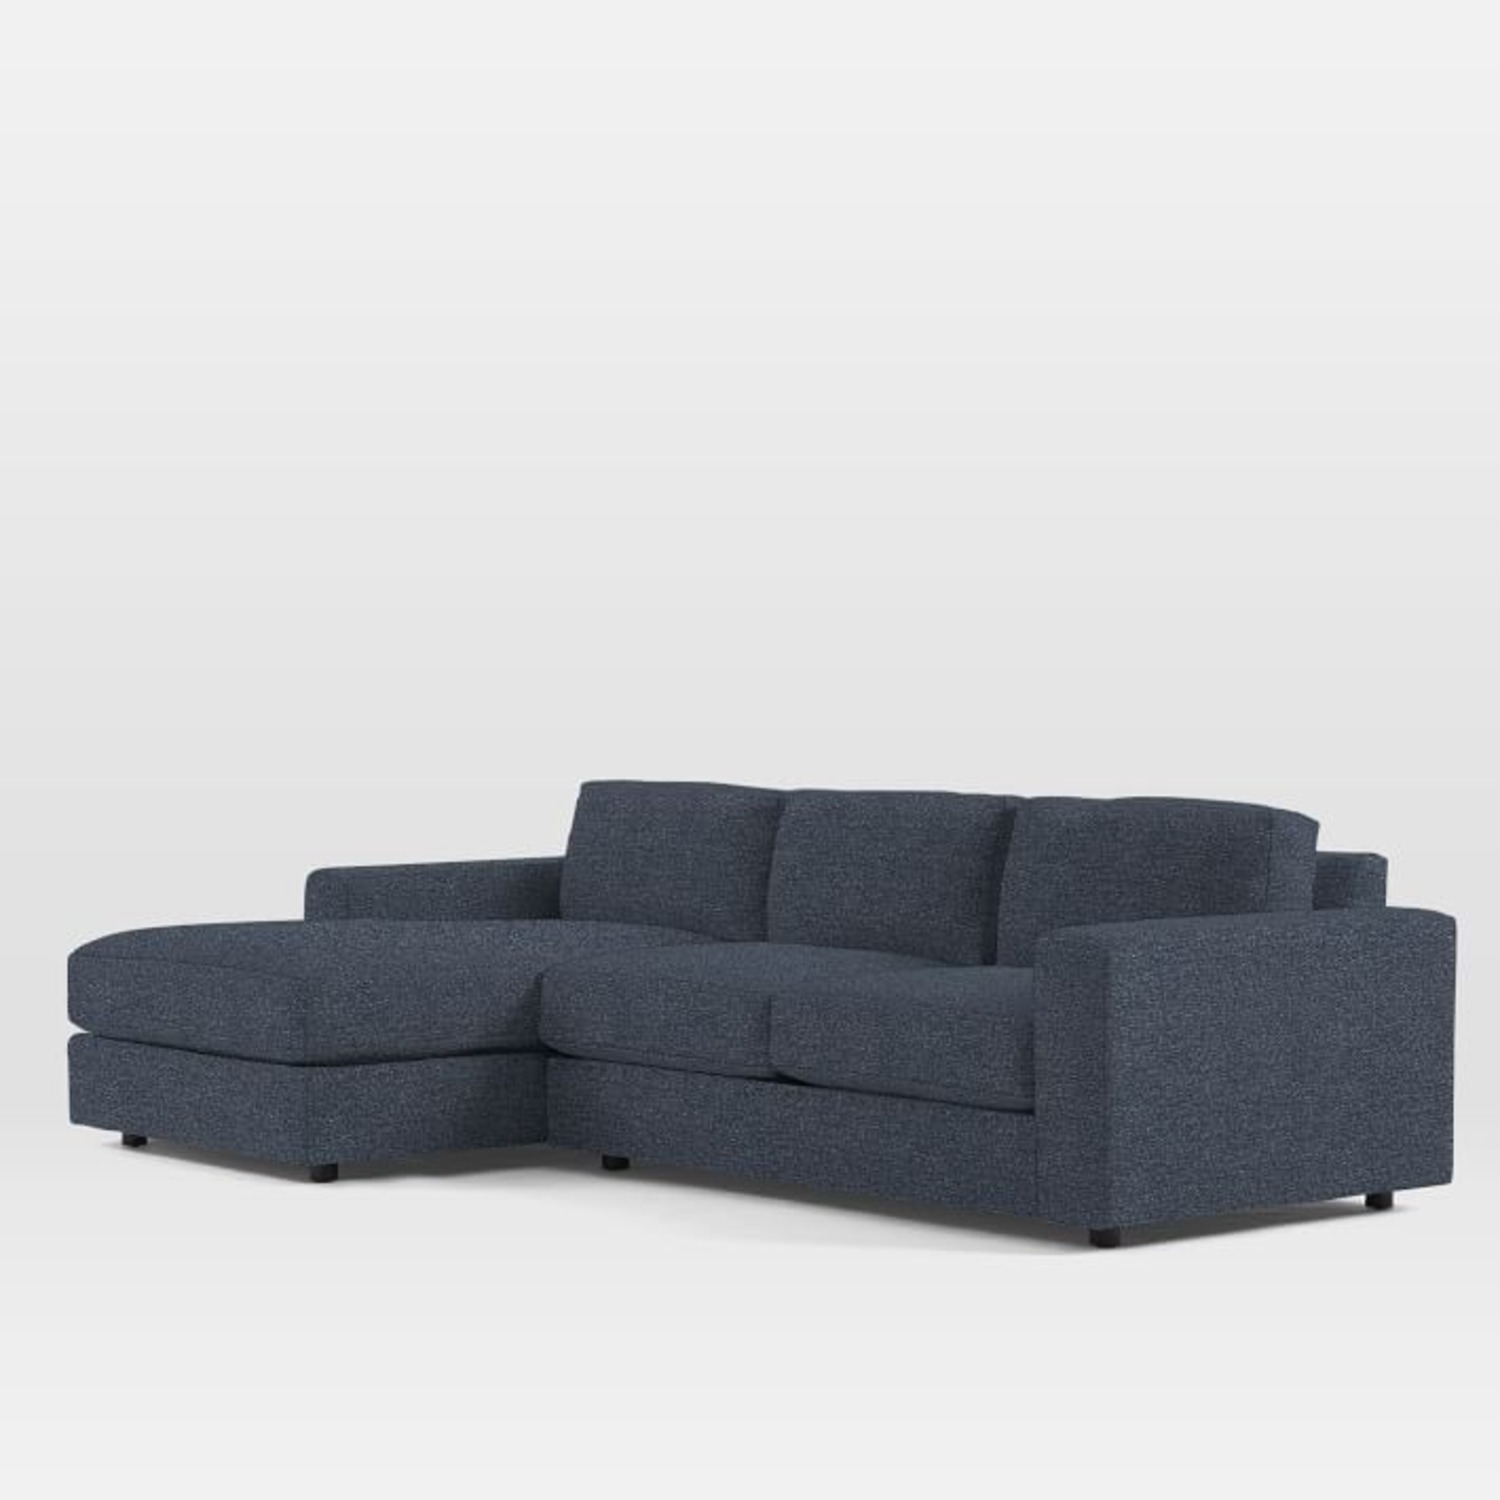 West Elm Urban 2-Piece Chaise Sectional - image-2